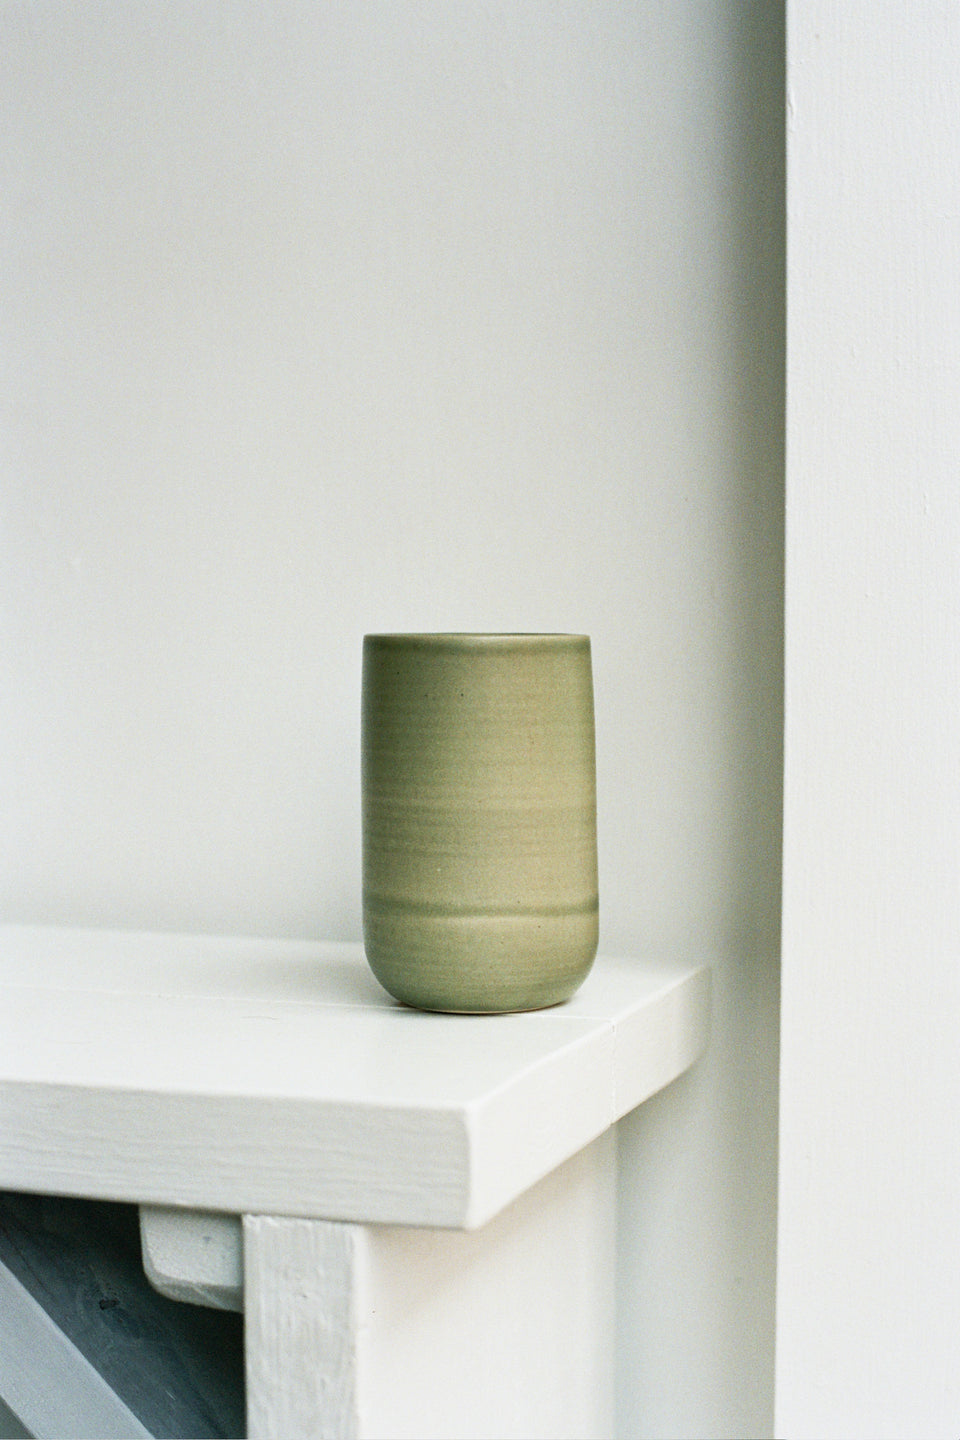 Rachel Saunders Ceramics Avocado Smoothie Cup